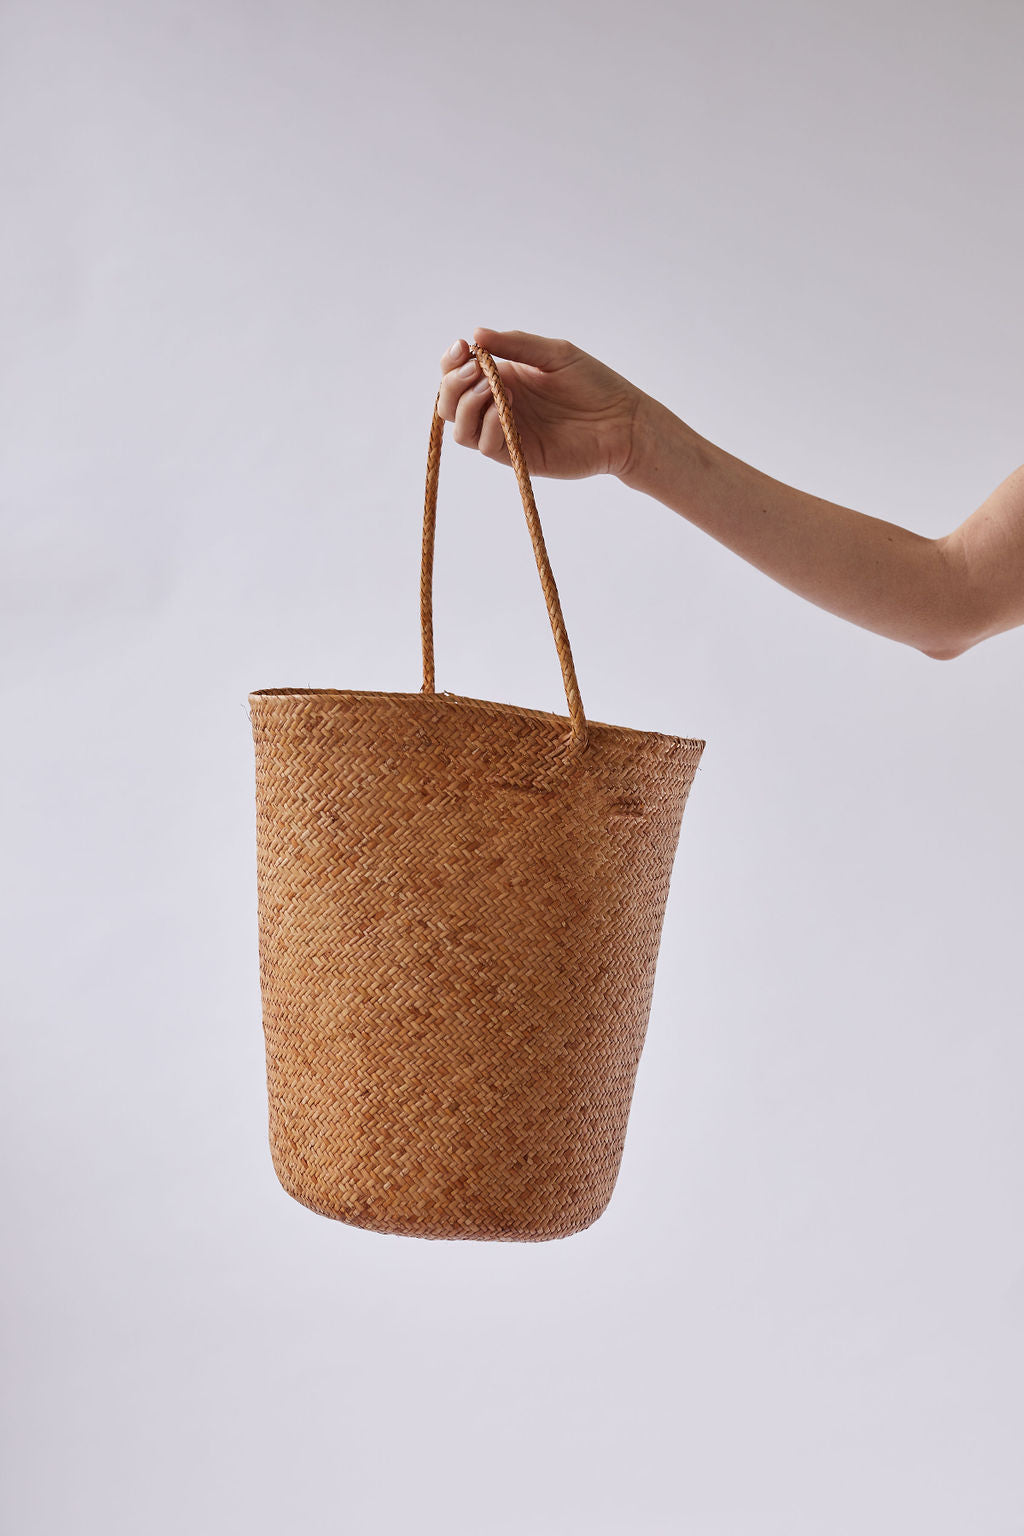 The Bucket Tote in Tan